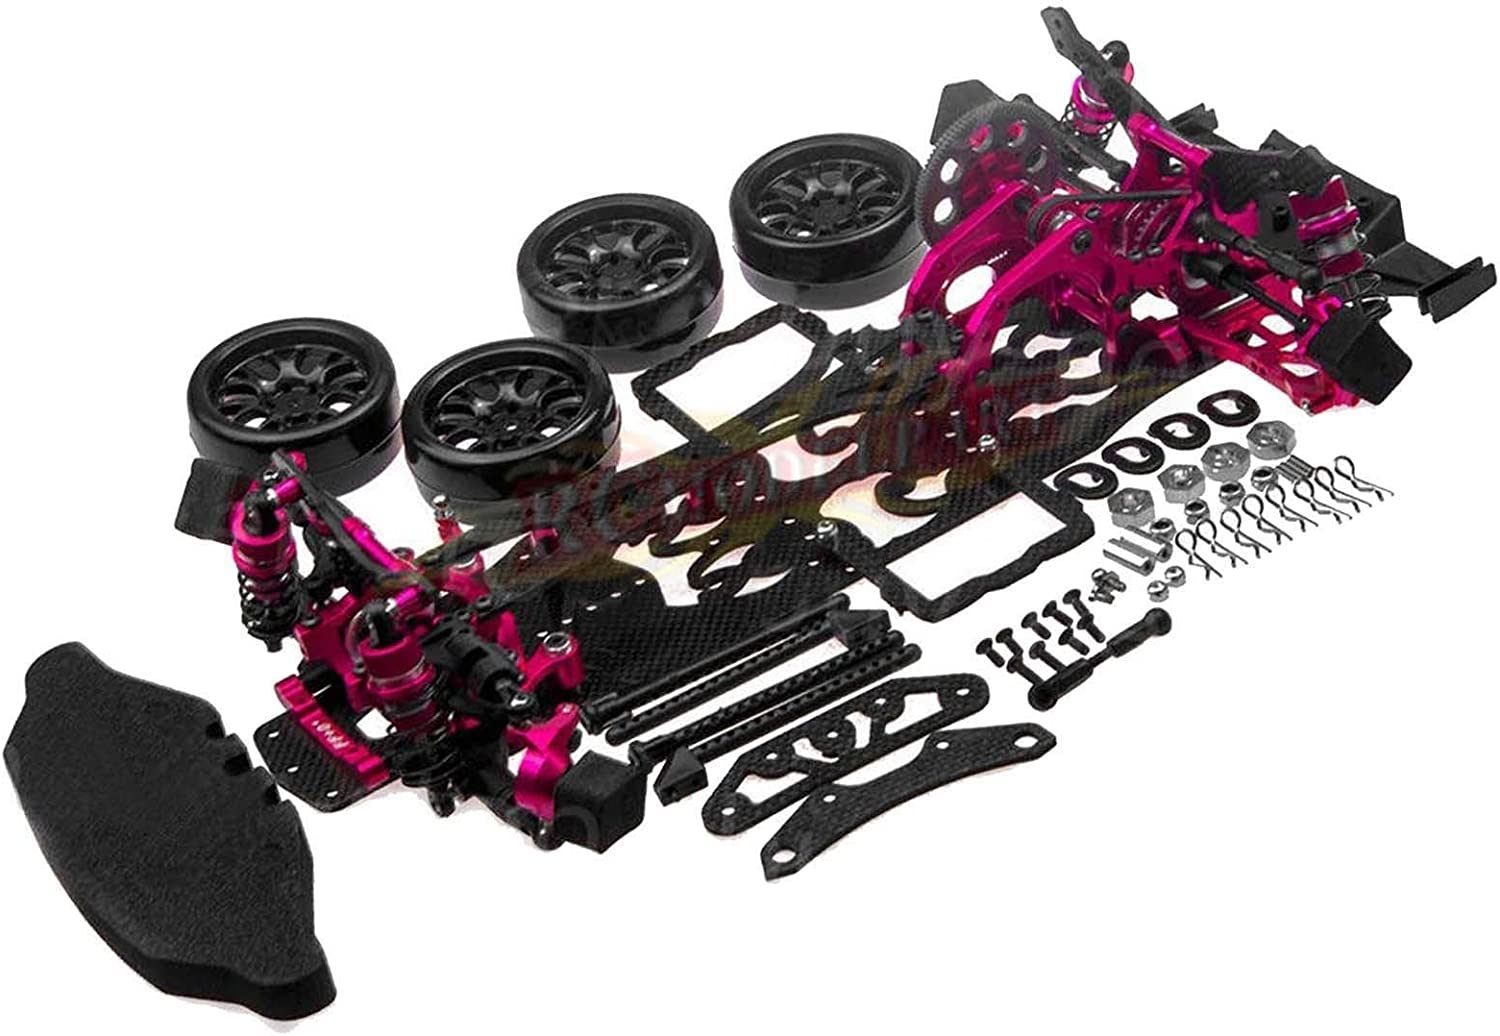 Top 5 Best RC Car Kits: Cool Options For You to Check Out 4